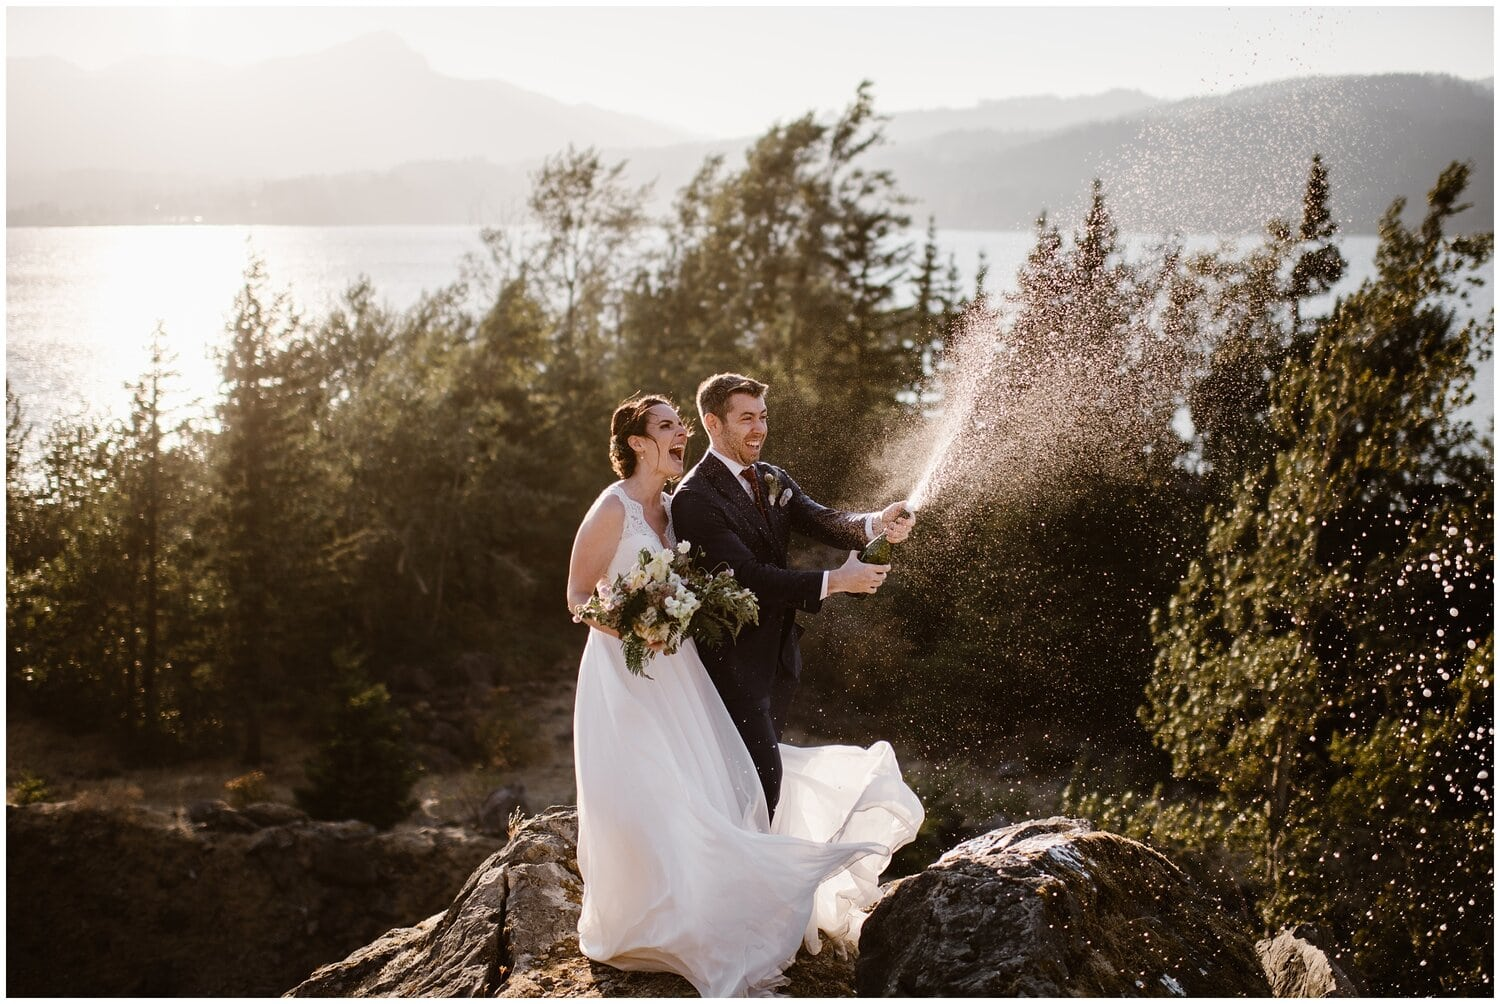 A bride and groom laugh while popping a bottle of champagne.